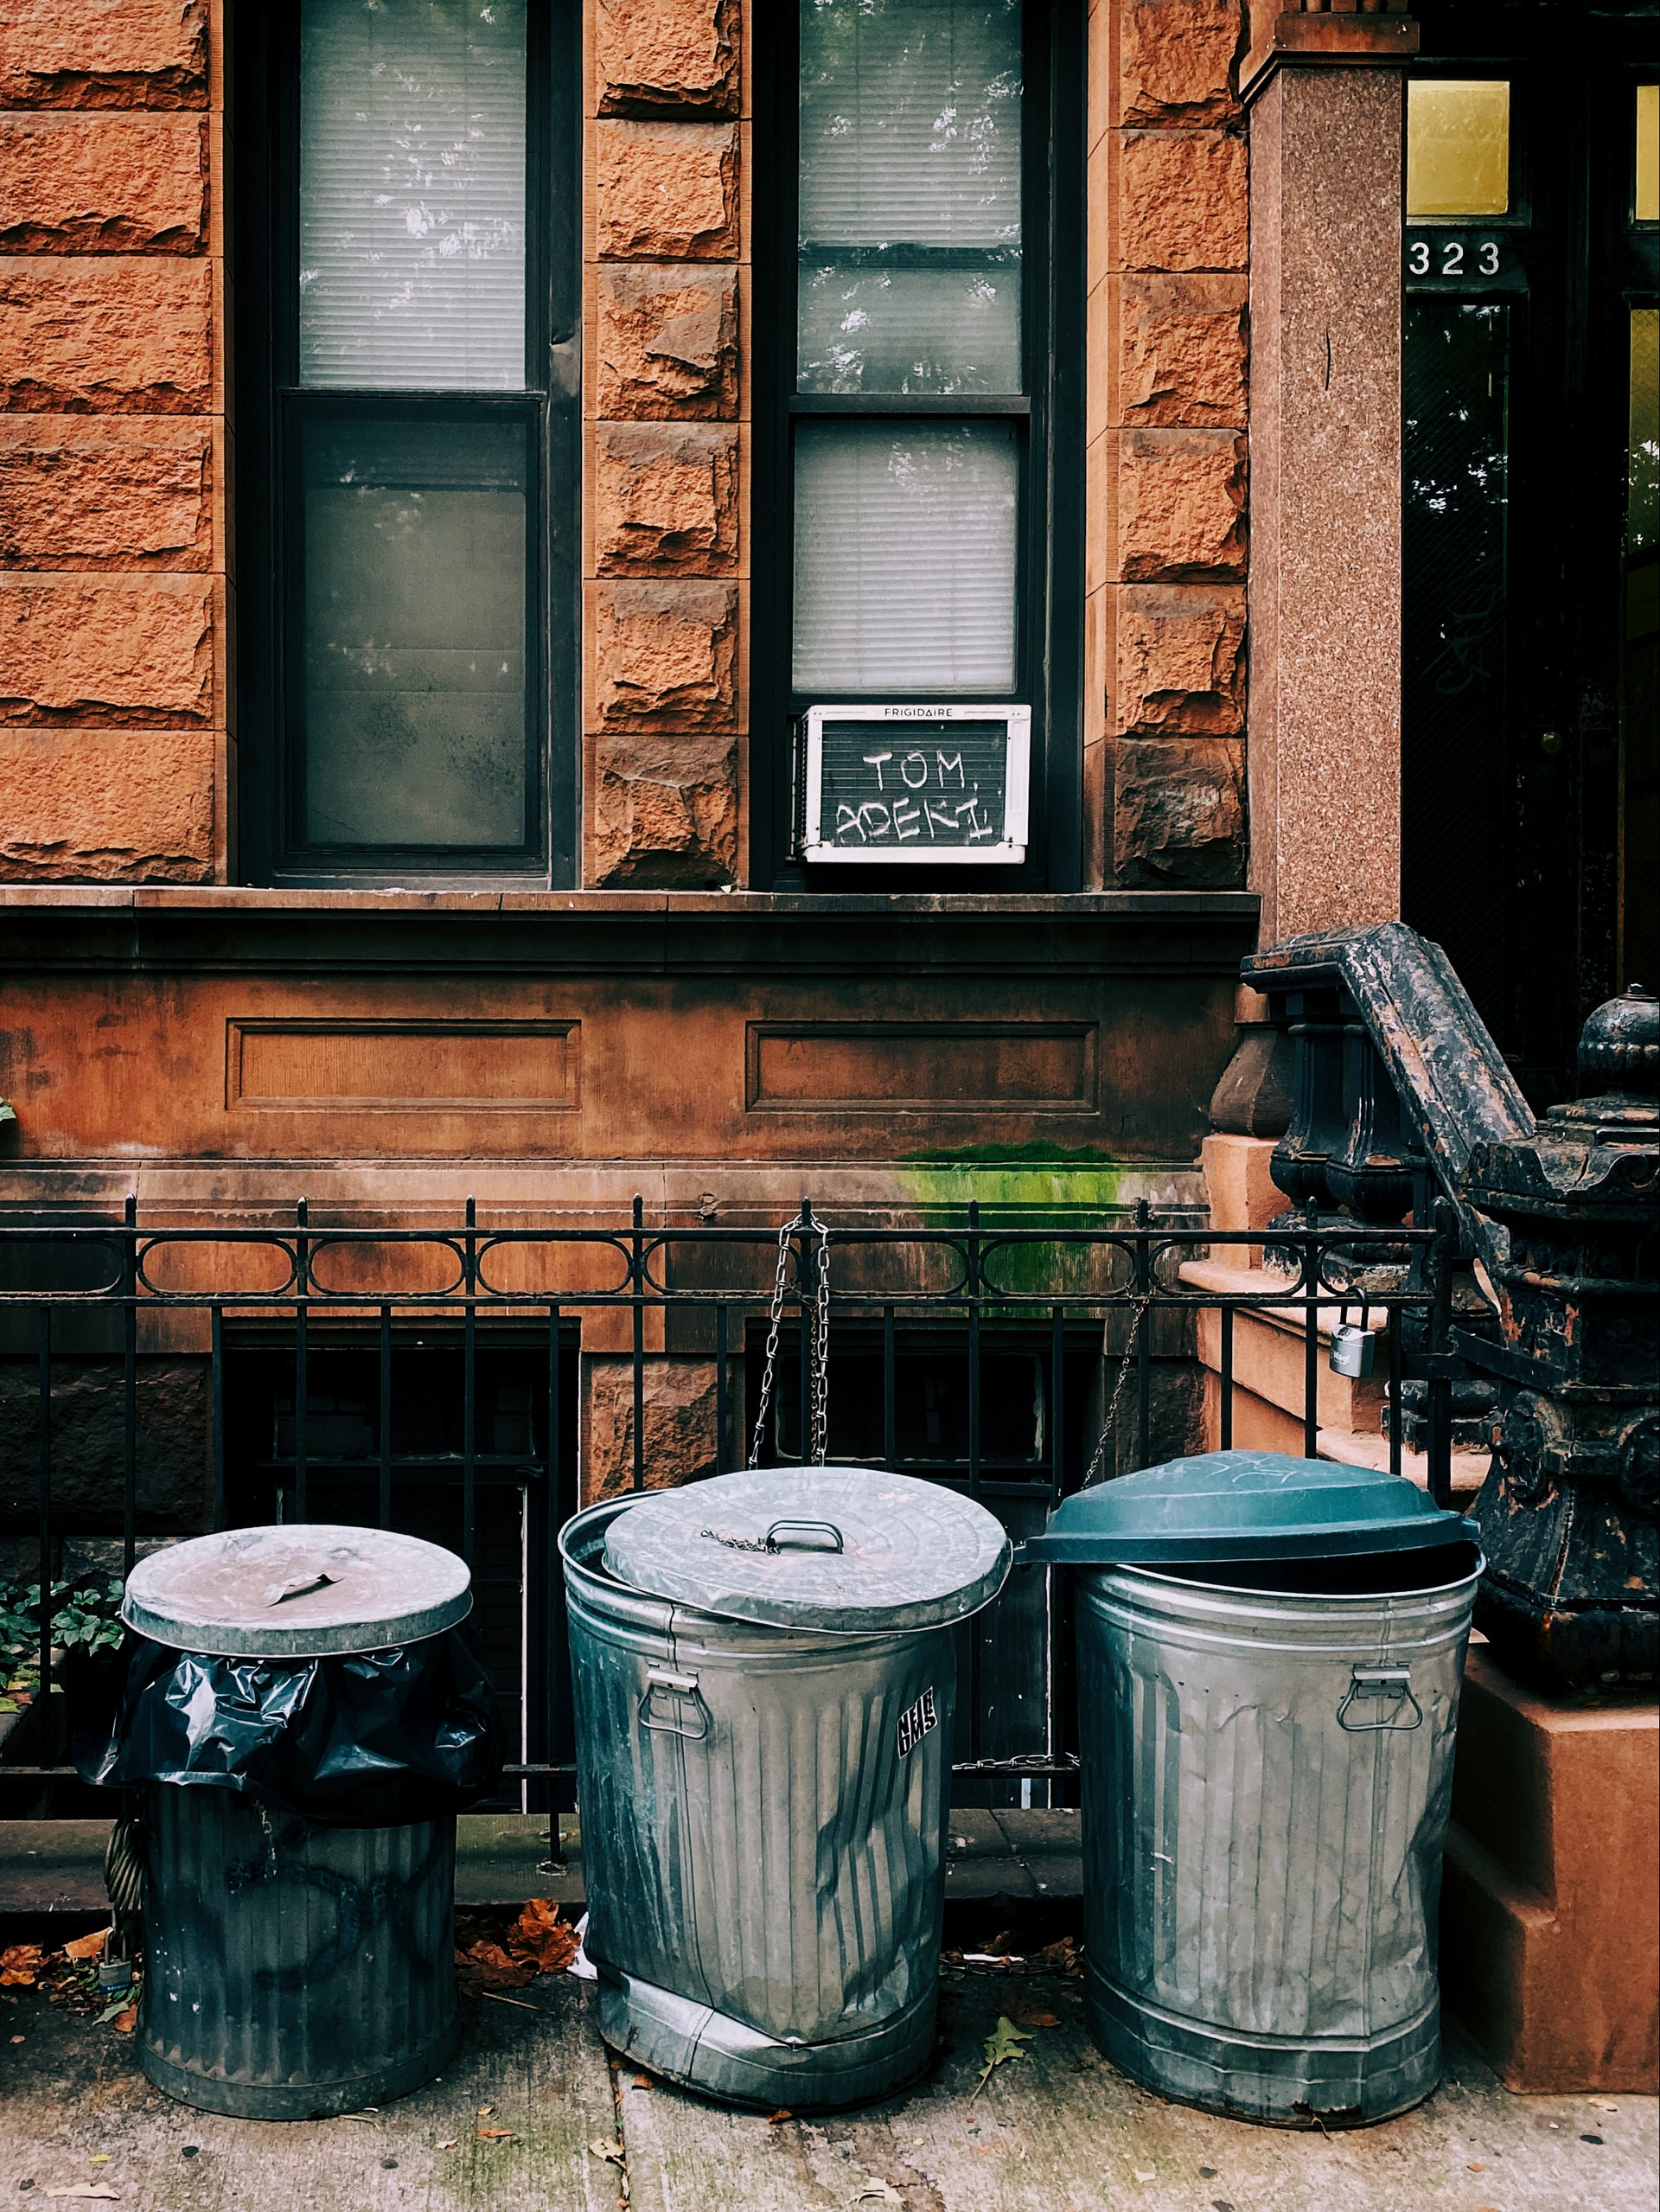 Garbage cans causing blight to neighborhoods